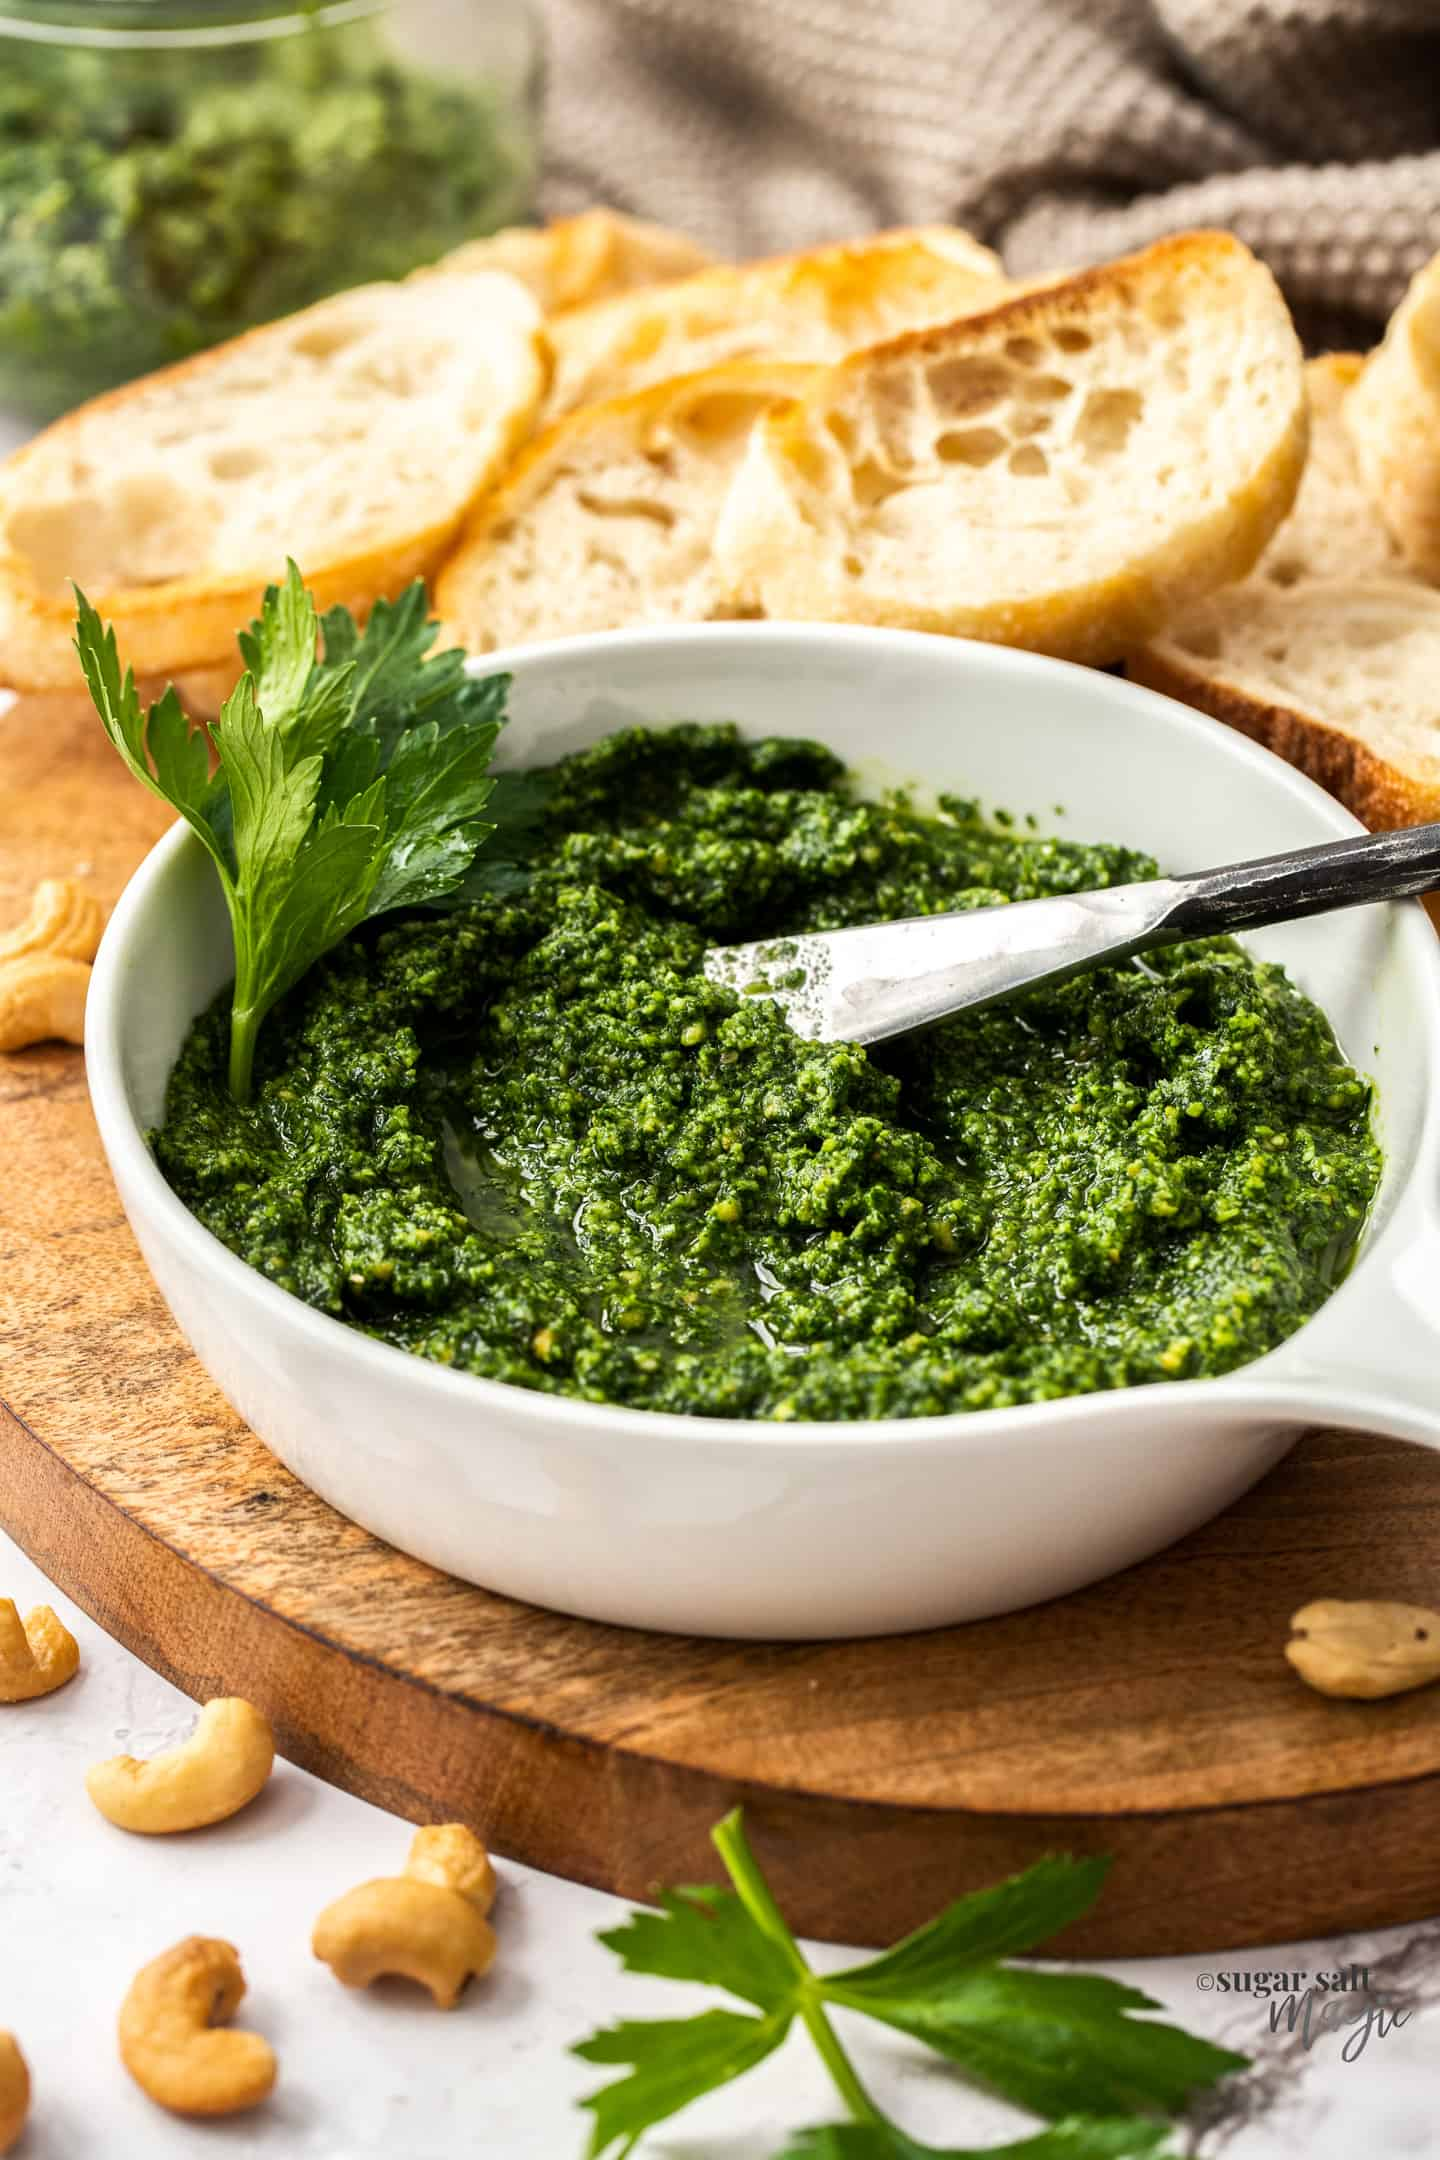 A white bowl filled with green pesto on a wooden board.